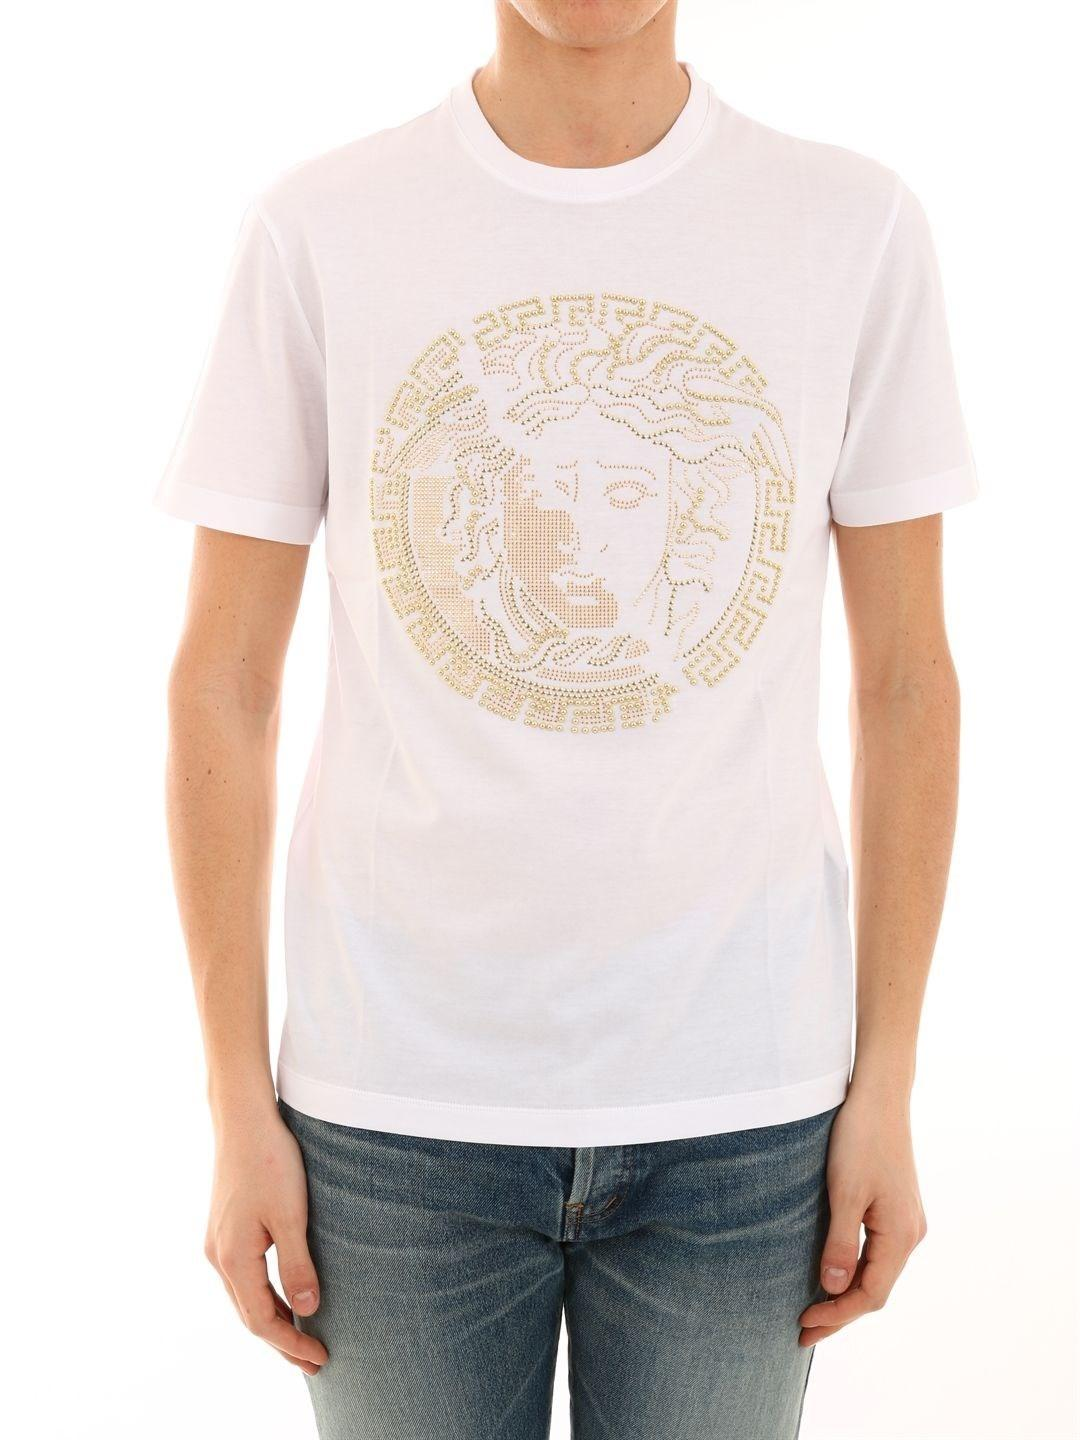 7dc739f33 Lyst - Versace Men's A81884a224589a001 White Cotton T-shirt in White ...